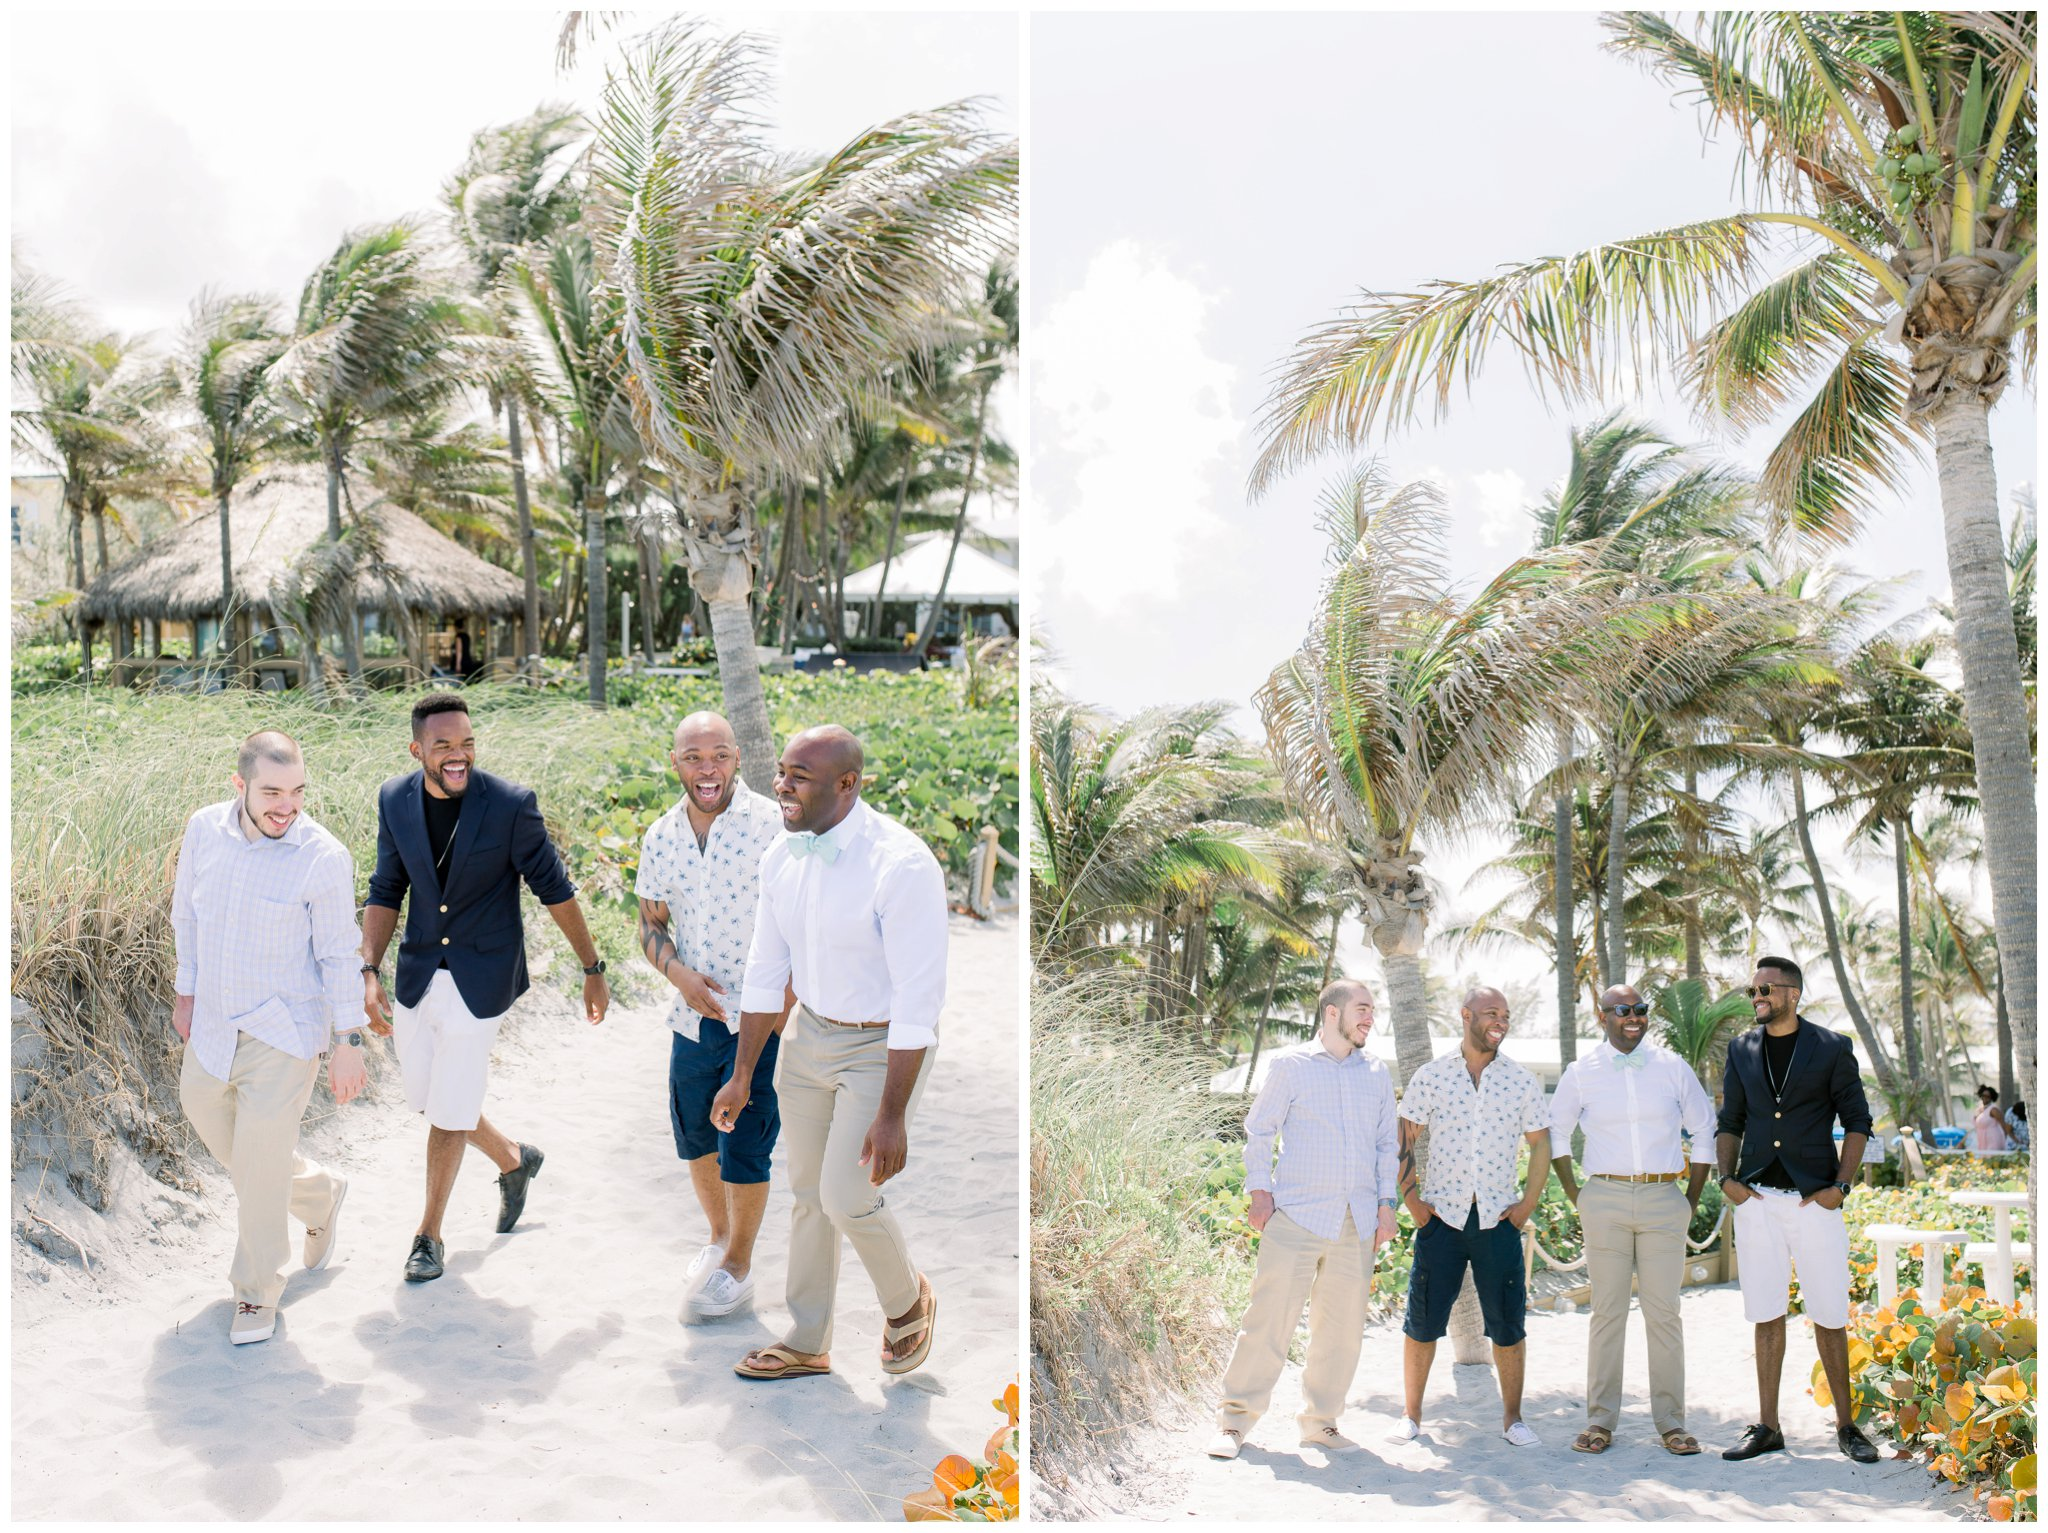 South Florida Wedding Photographer- Palm Beach Wedding Photographer- Jupiter Wedding Photographer- Florida Photographer- Wright by the Sea Wedding- Wright by the Sea- Sturat Florida Wedding_0022.jpg